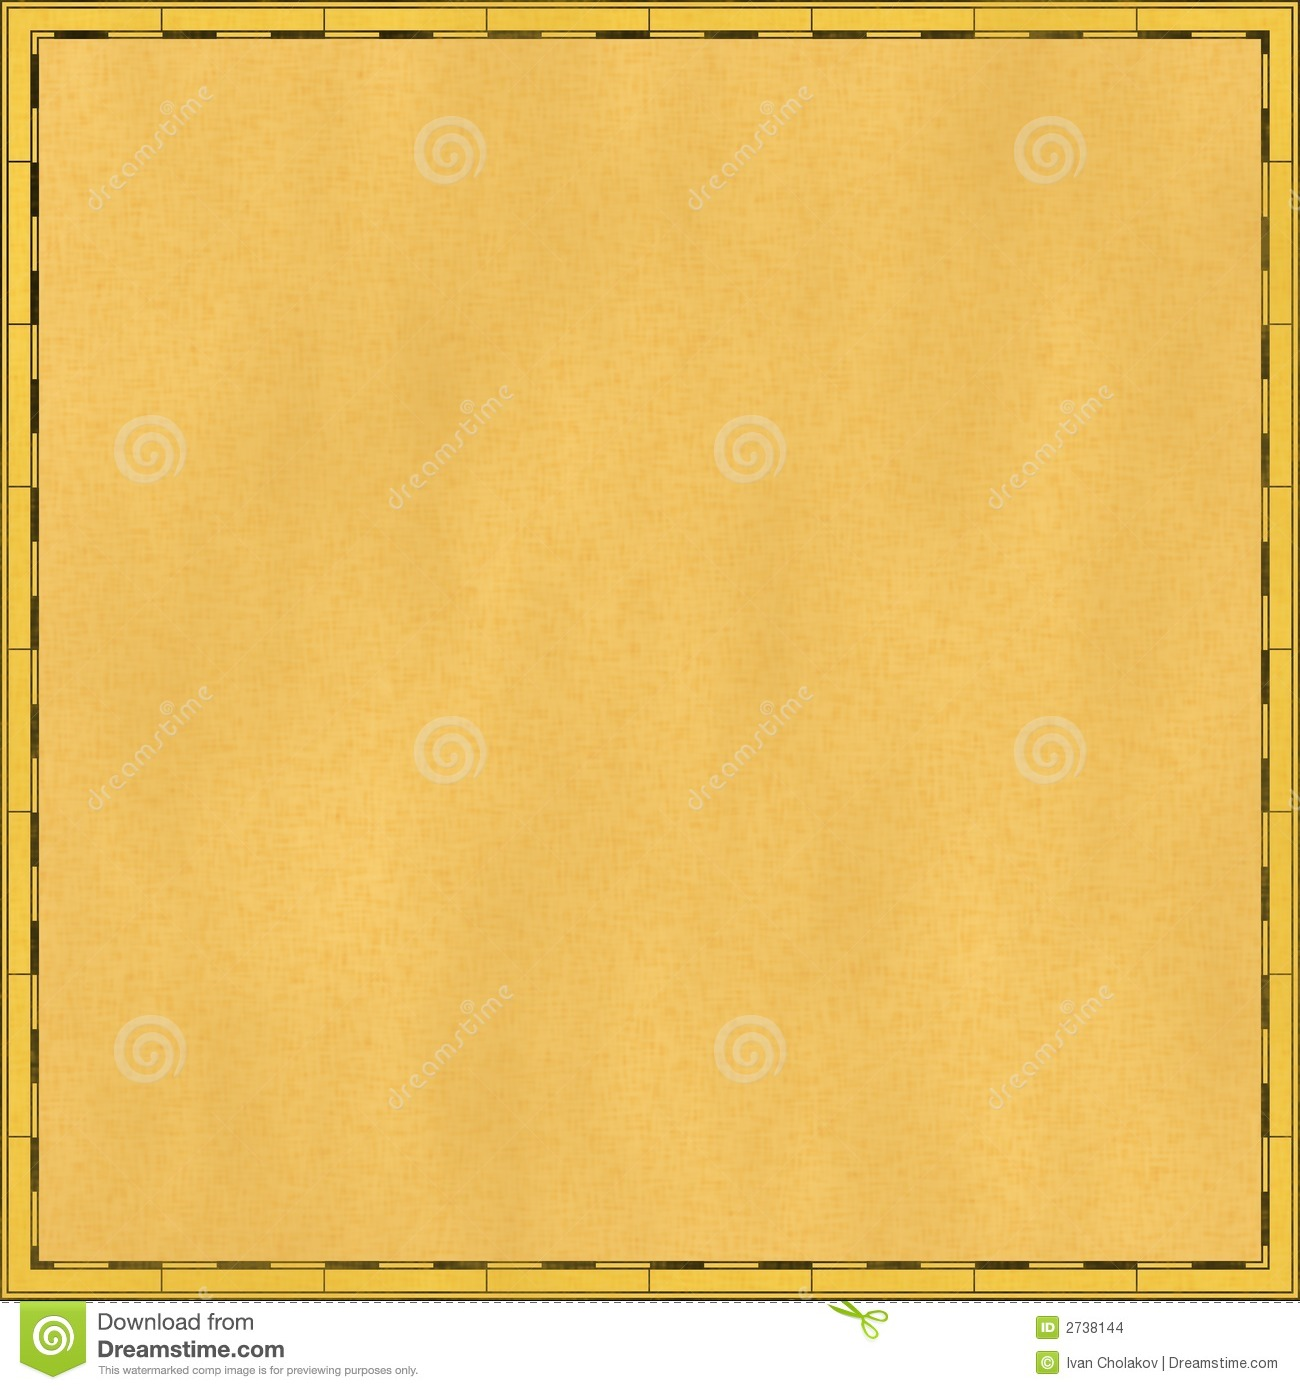 Carta da lettere antica illustrazione di stock immagine for Carta da lettere